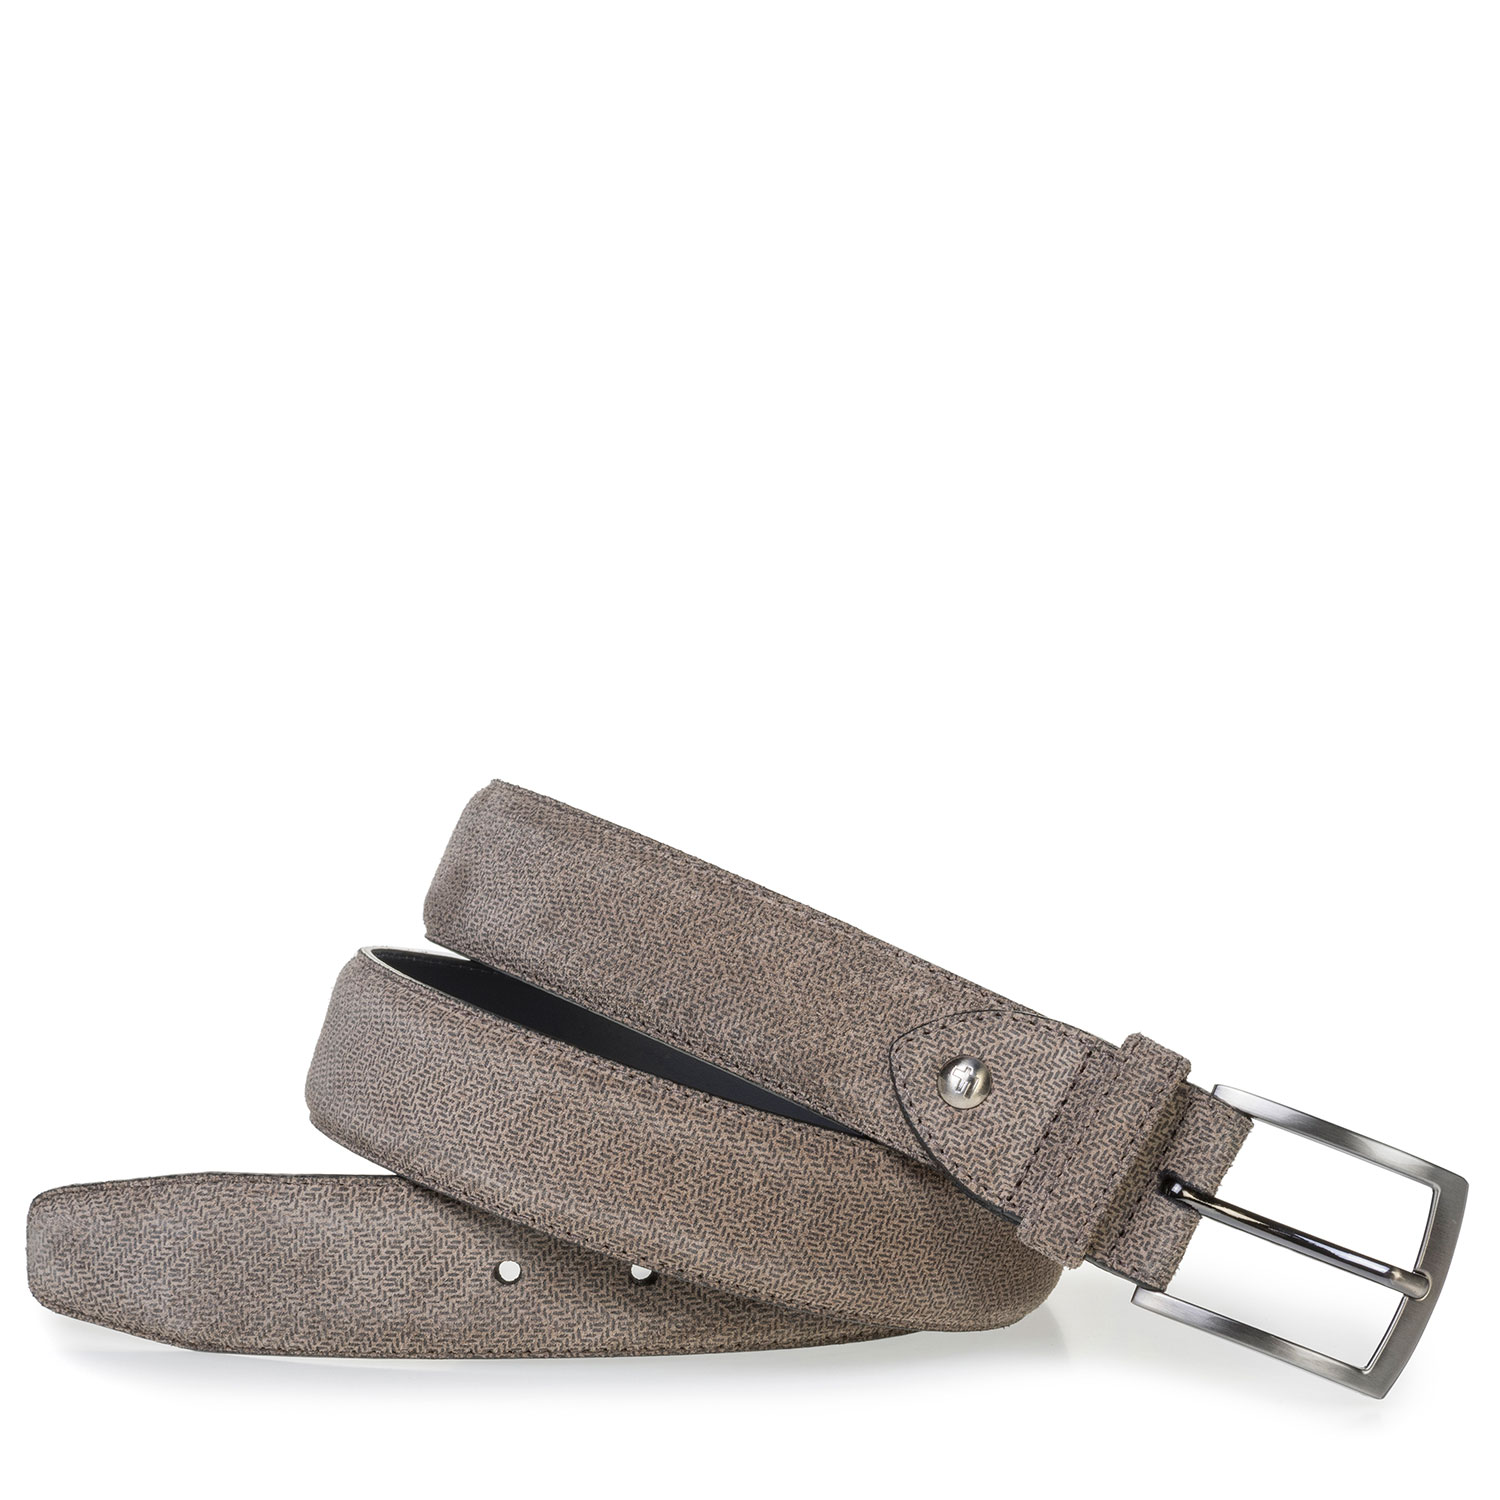 75201/70 - Beige suede leather belt with print